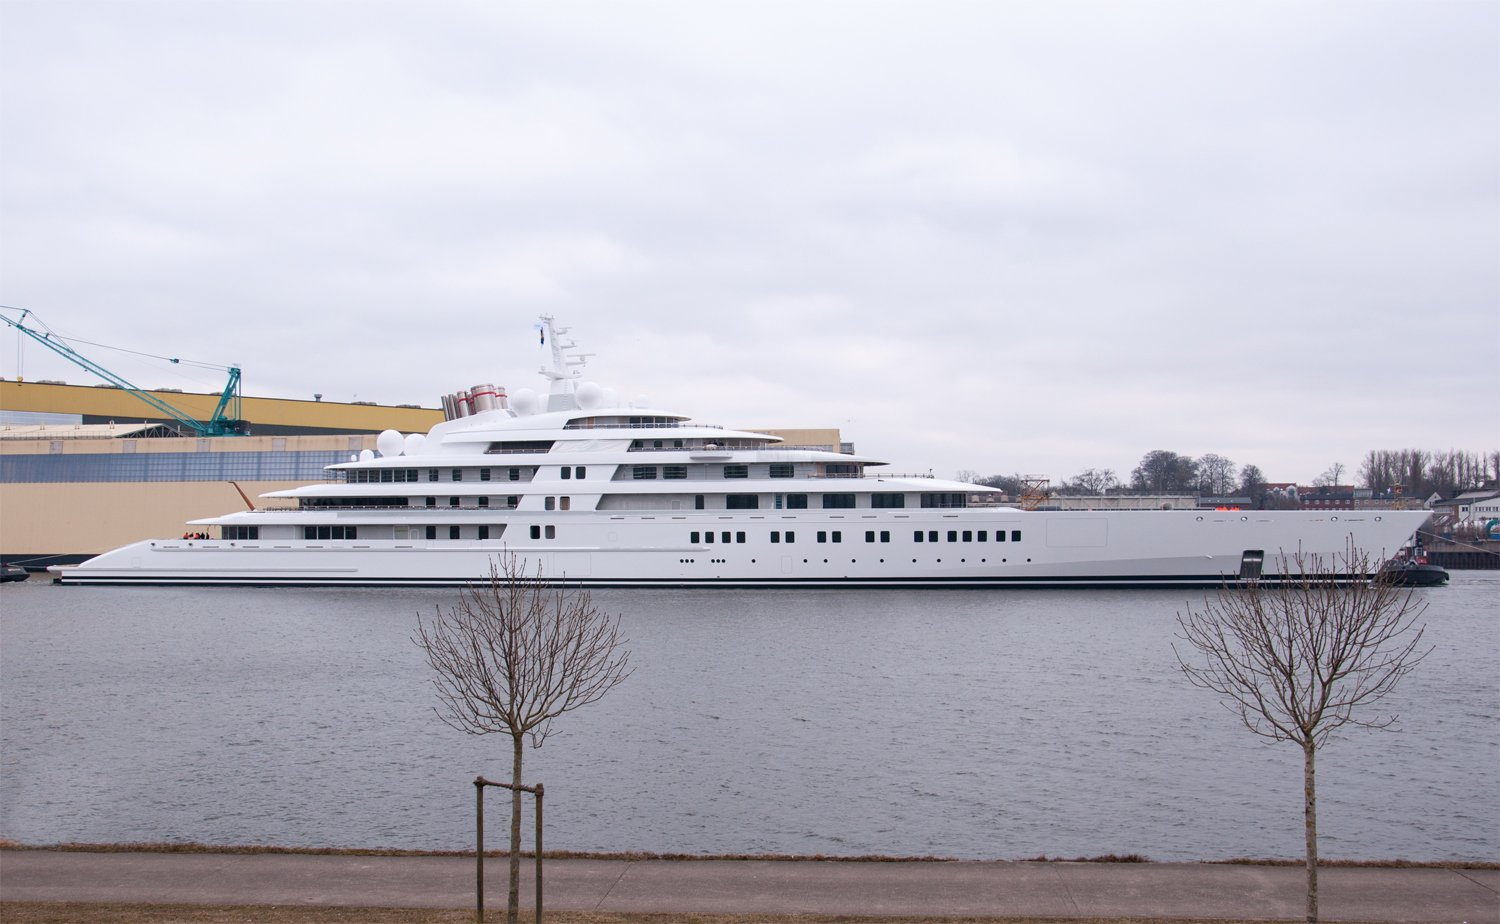 The 5 Most Expensive Luxury Yachts in The World most expensive luxury yachts The 5 Most Expensive Luxury Yachts in The World the 5 most expensive luxury yachts in the world azzam